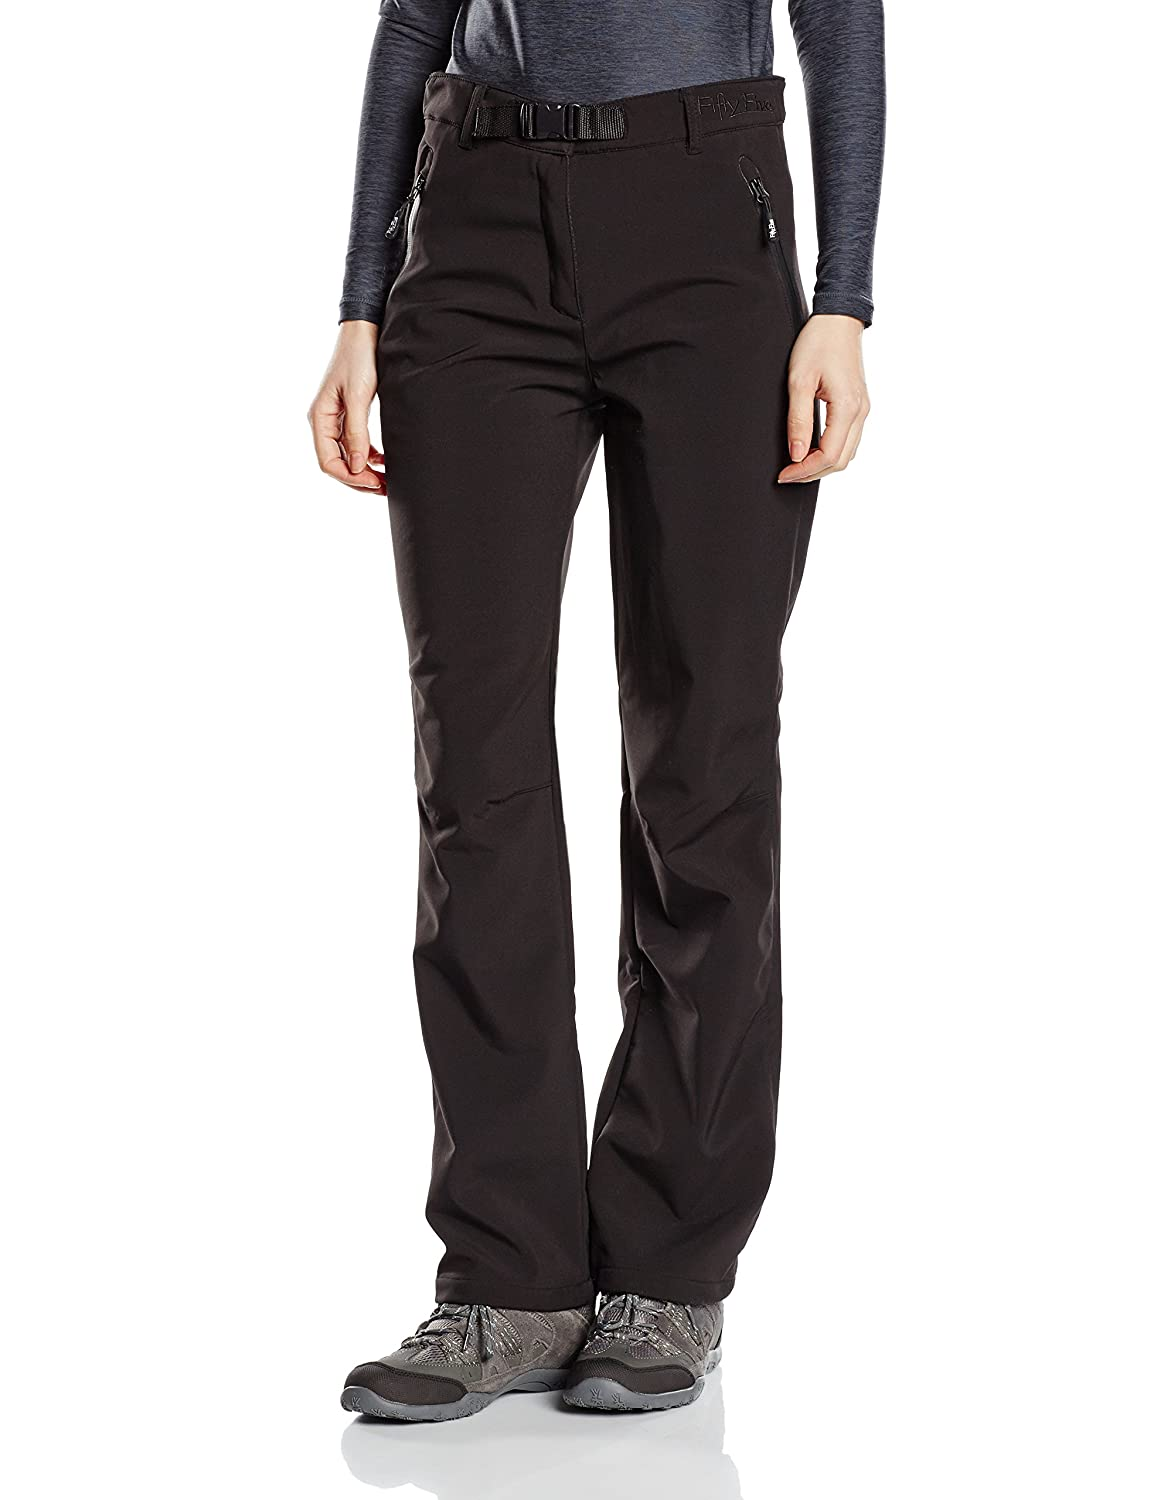 Softshell-Hose Outdoor-Hosen für Damen von Fifty Five - Orac - winddichte  wasserfeste 930d80db54